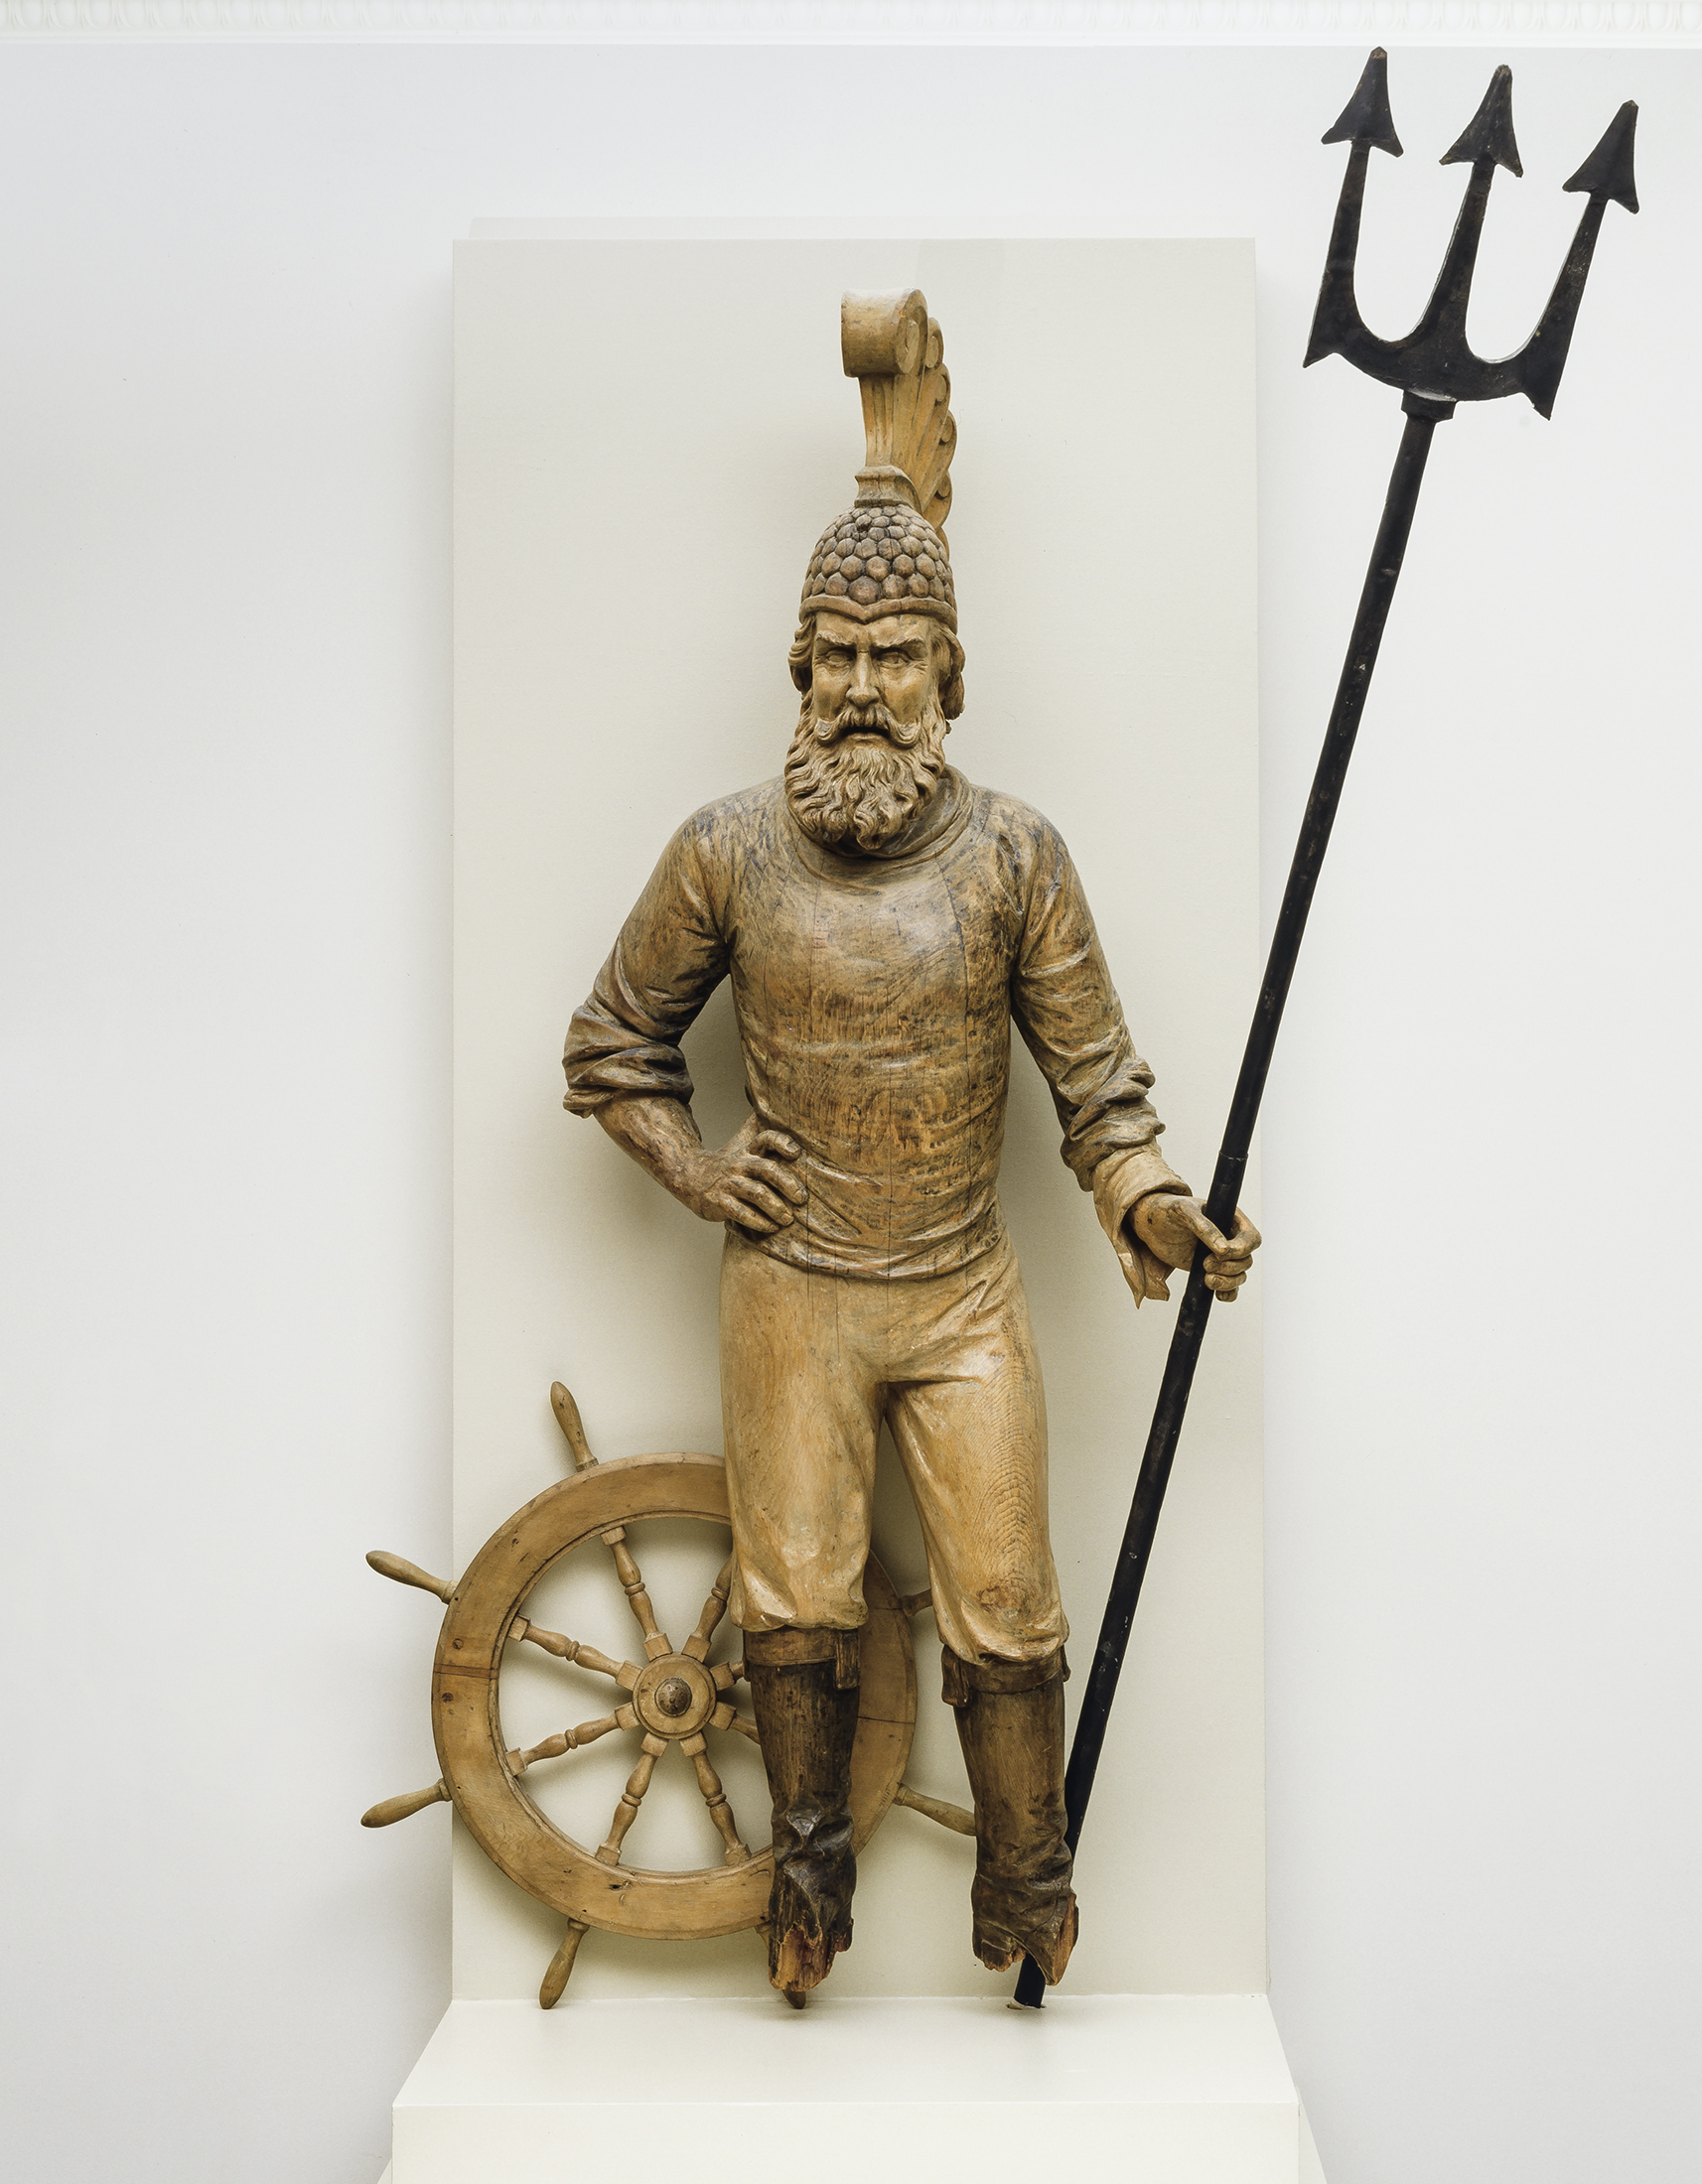 This gilded statue represents a bearded man wearing a crested warrior's helmet. The figure is holding a long trident in his left hand. A ship's wheel stands behind his right leg.